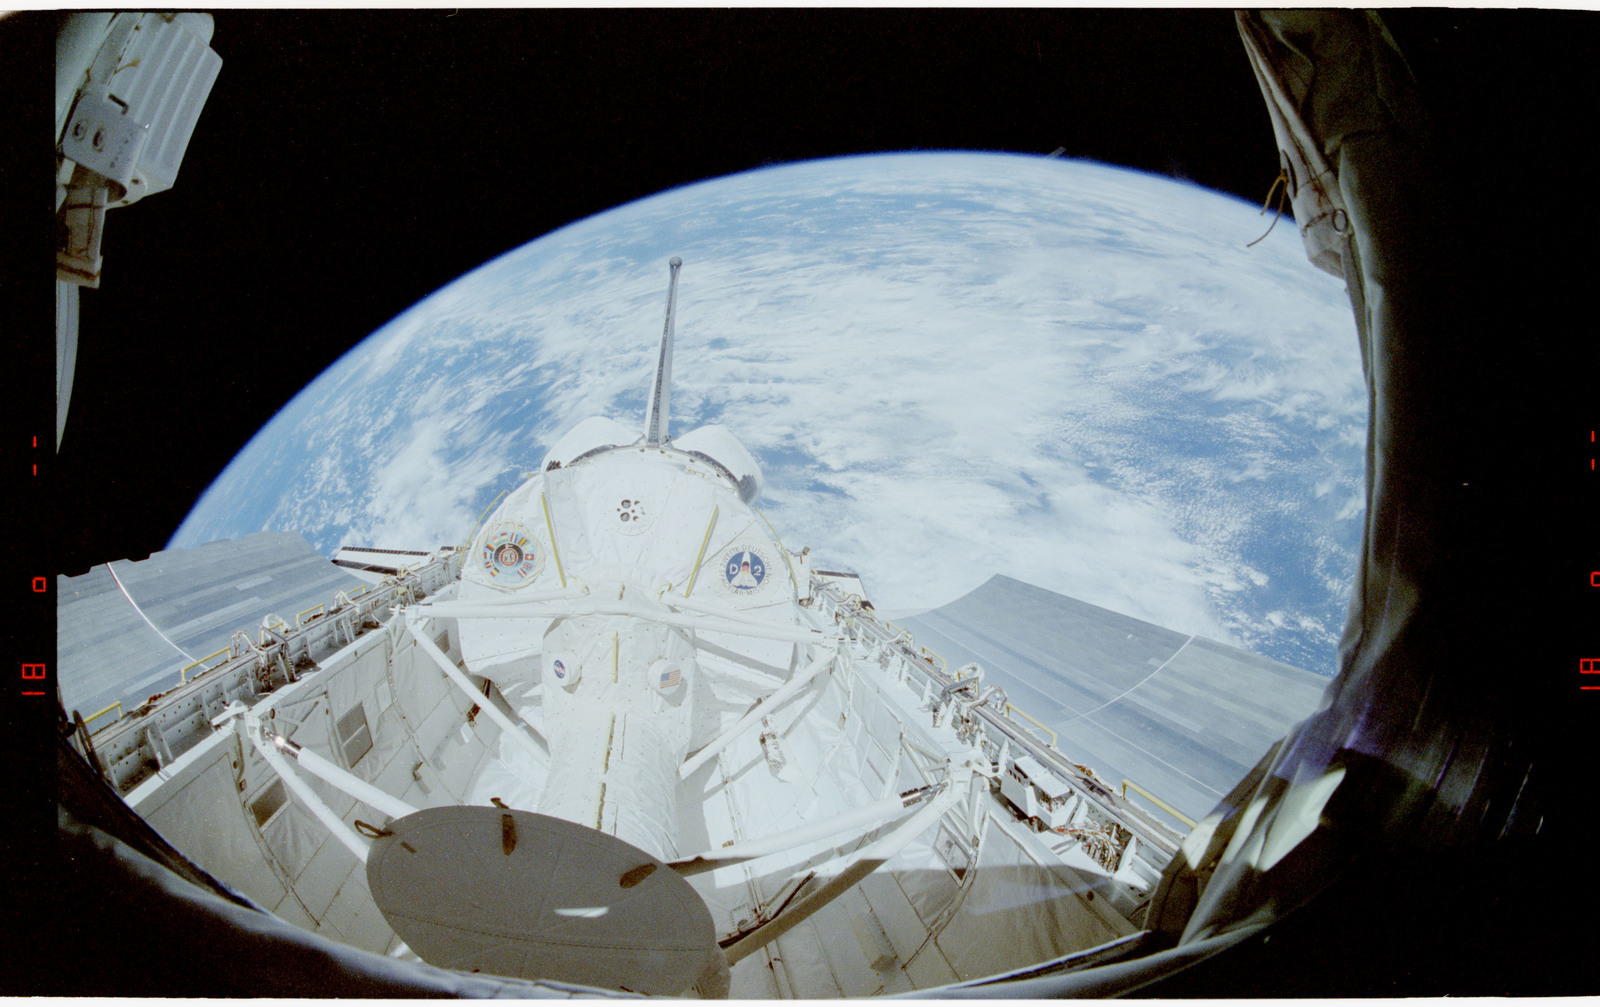 STS055-24-006 - STS-055 - Earth Limb, D-2 Spacelab and Payload Bay.